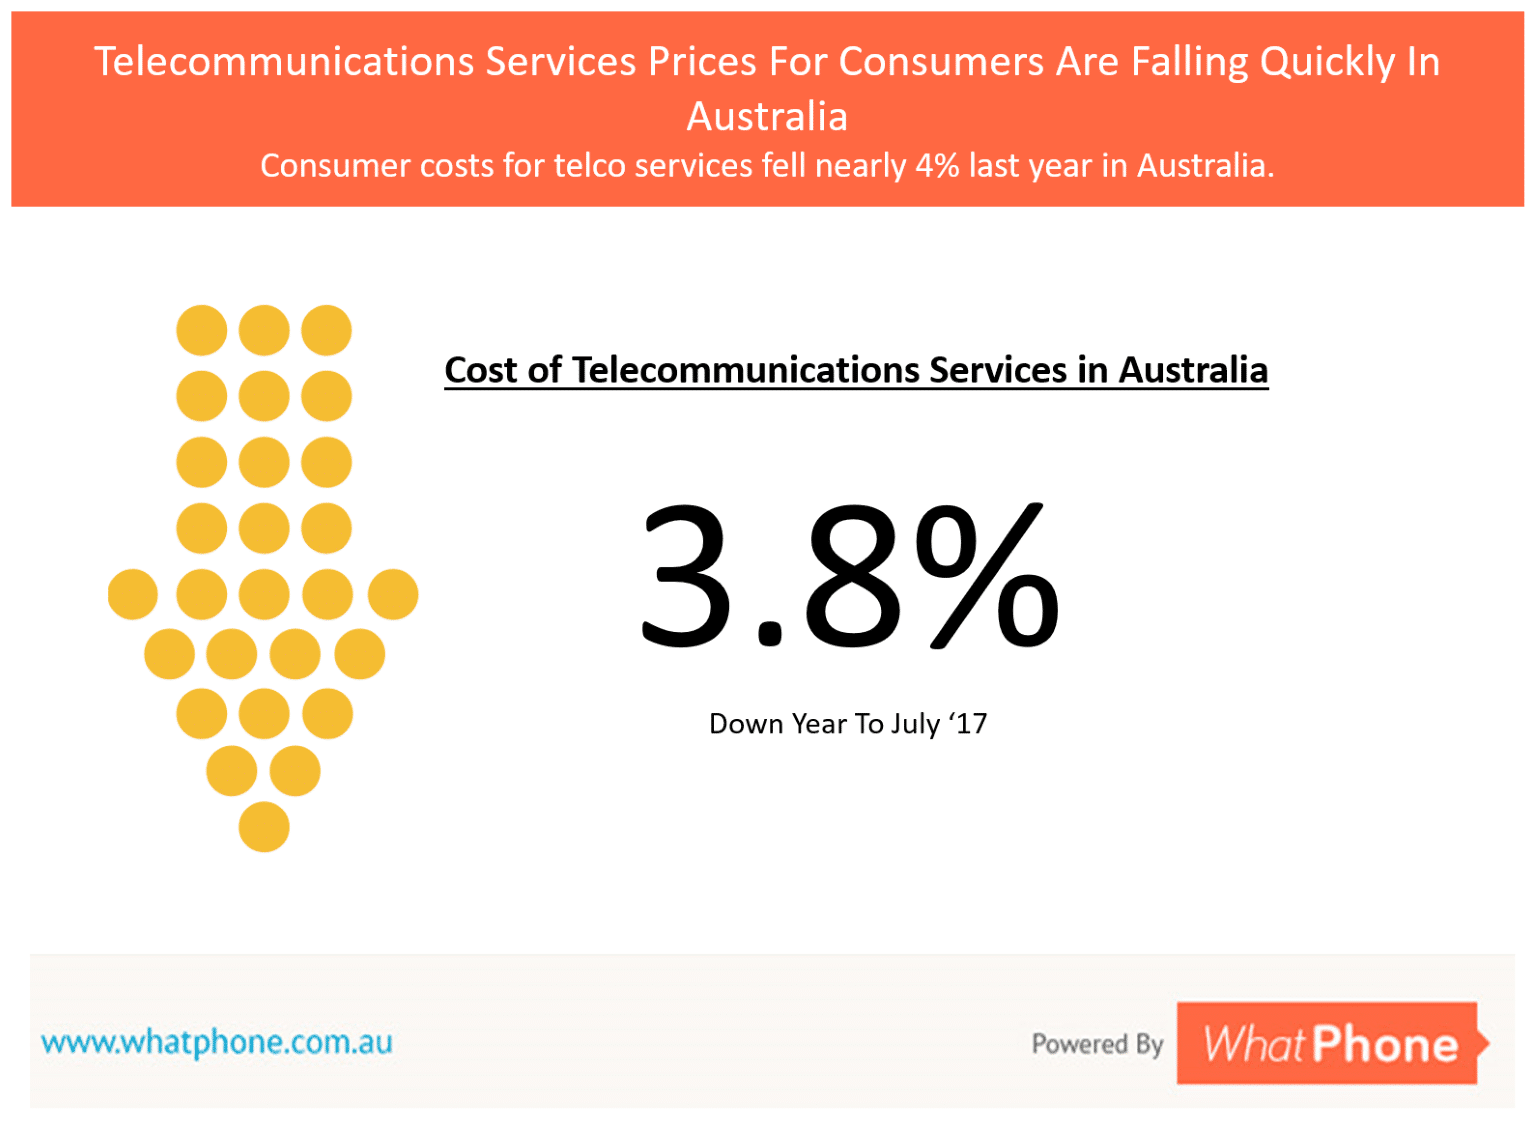 The ABS report a fall in the prices we pay for telecommunications services of nearly 4% last year.